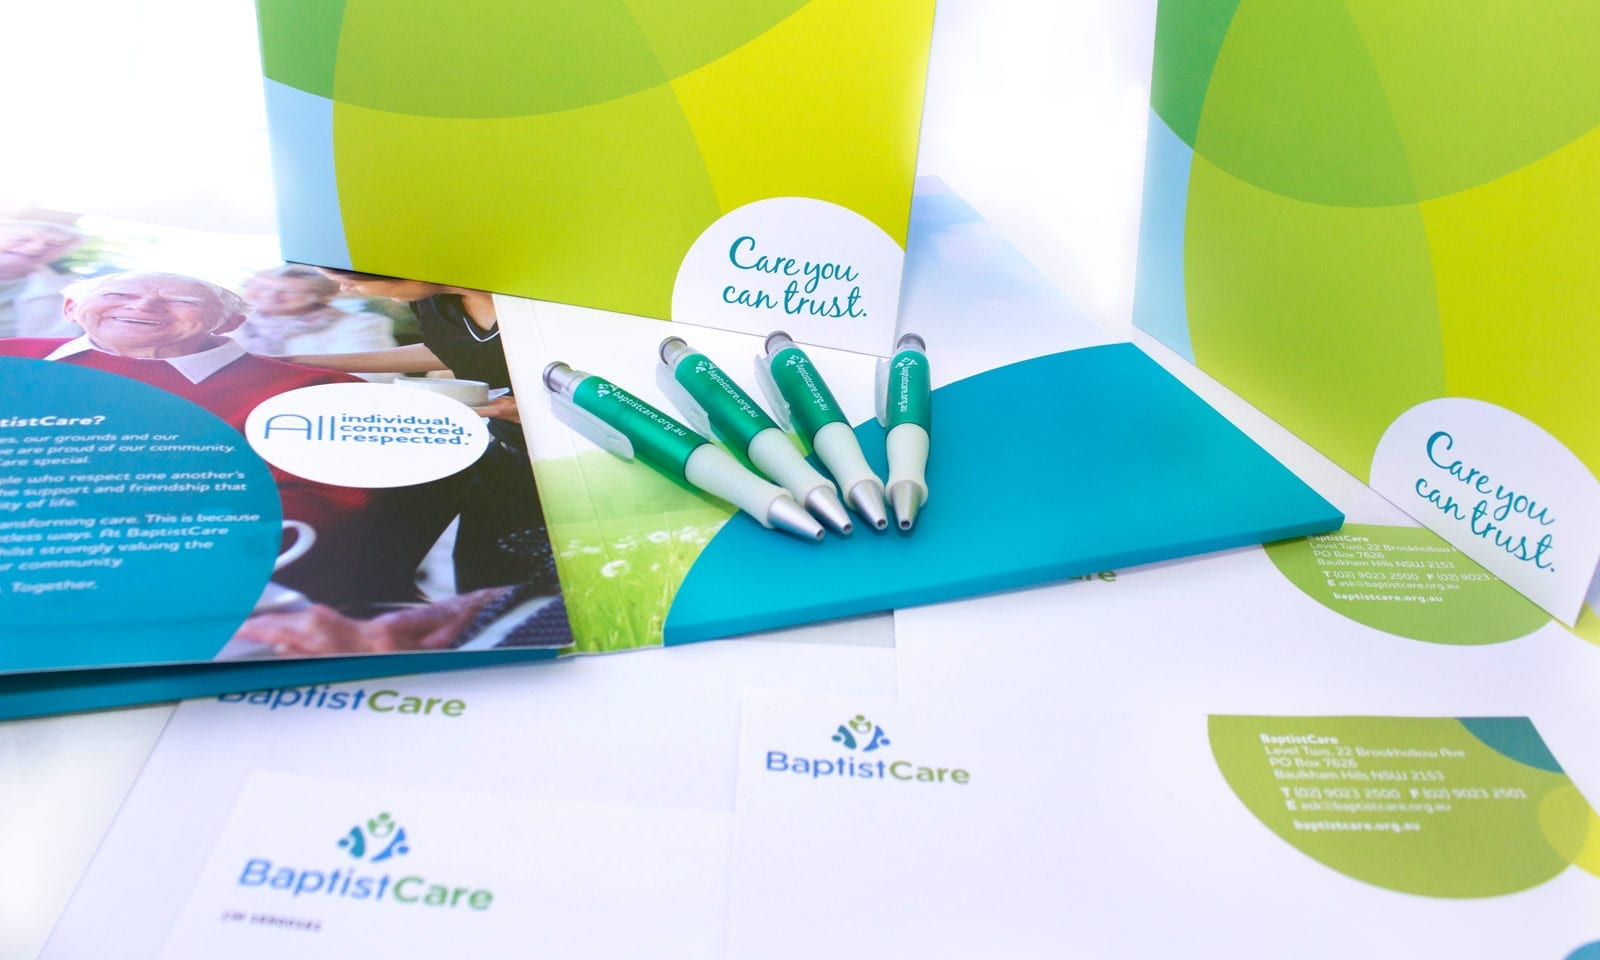 Literature design sydney, BaptistCare stationary redesign.